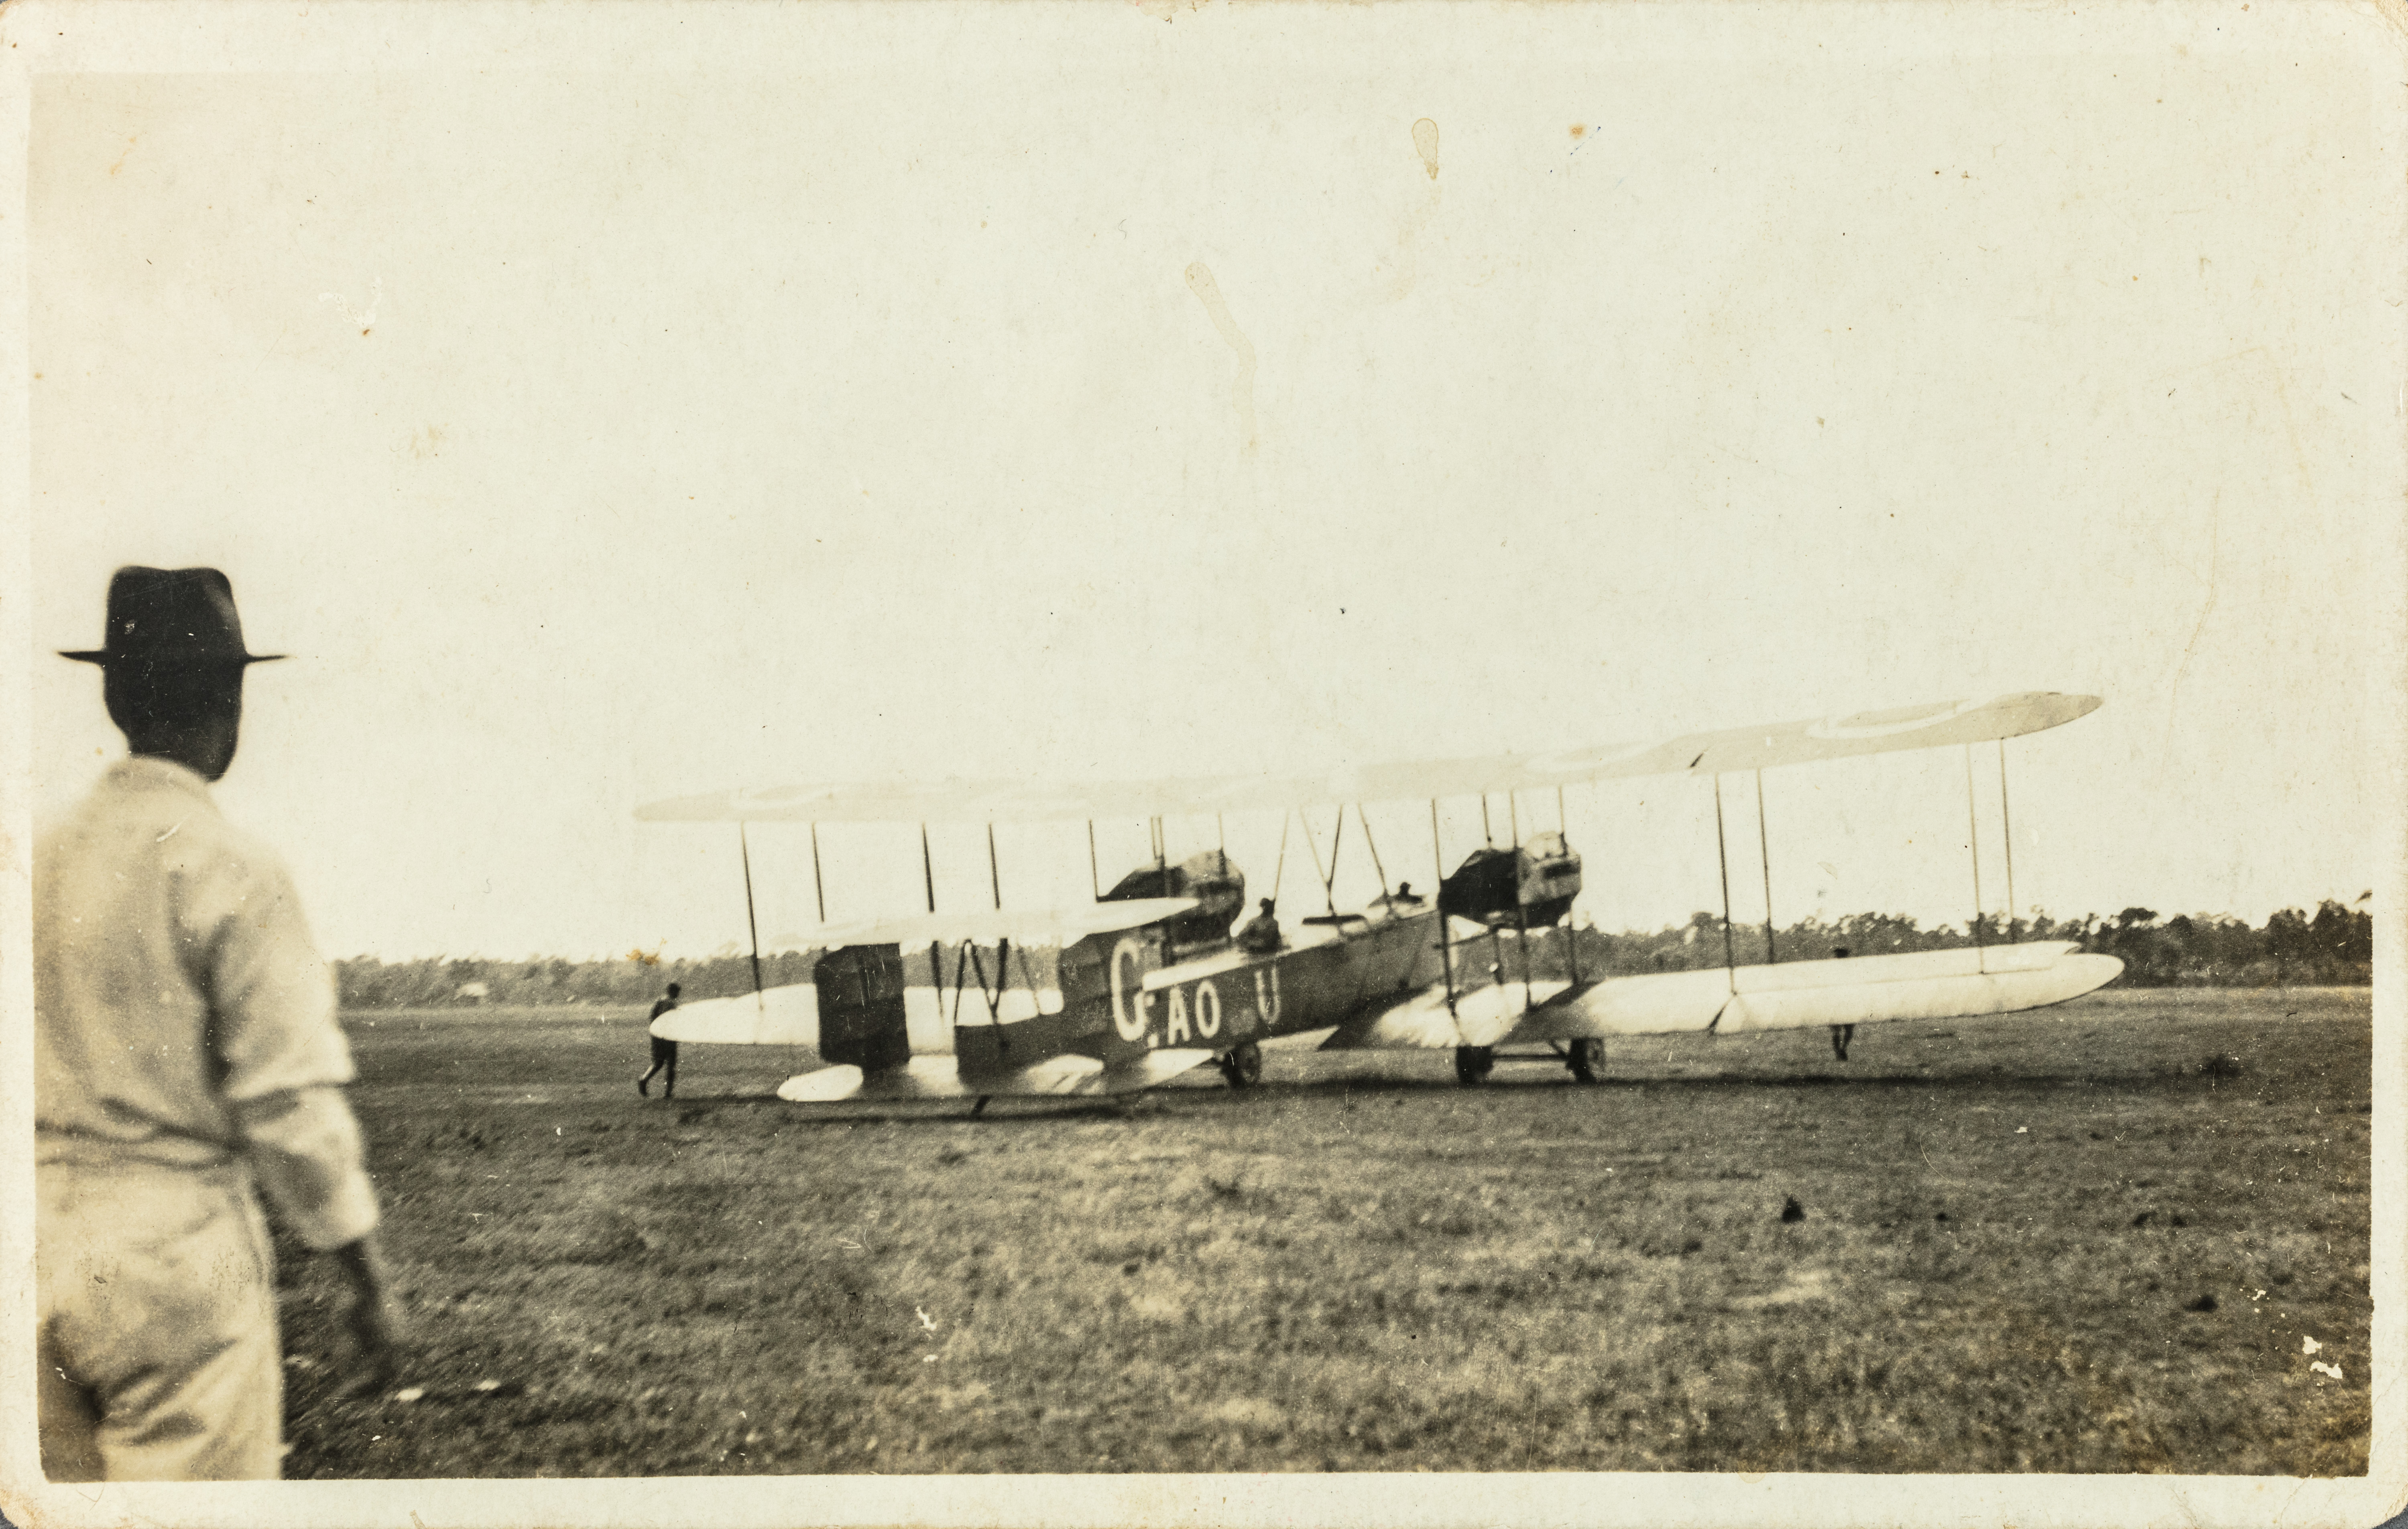 The Smith Brothers' Vickers Vimy aircraft in Darwin in 1919